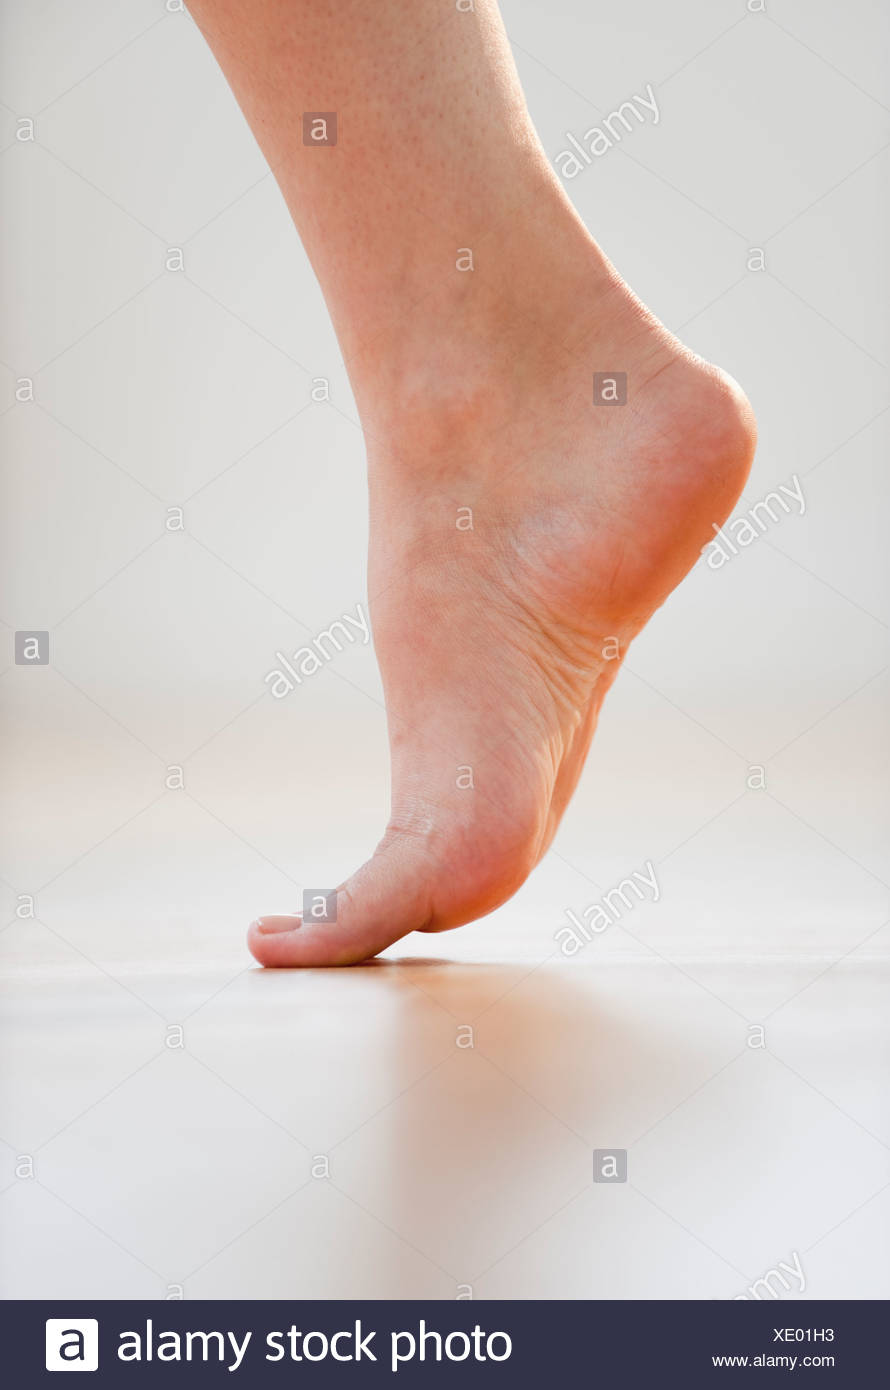 Foot - Stock Image